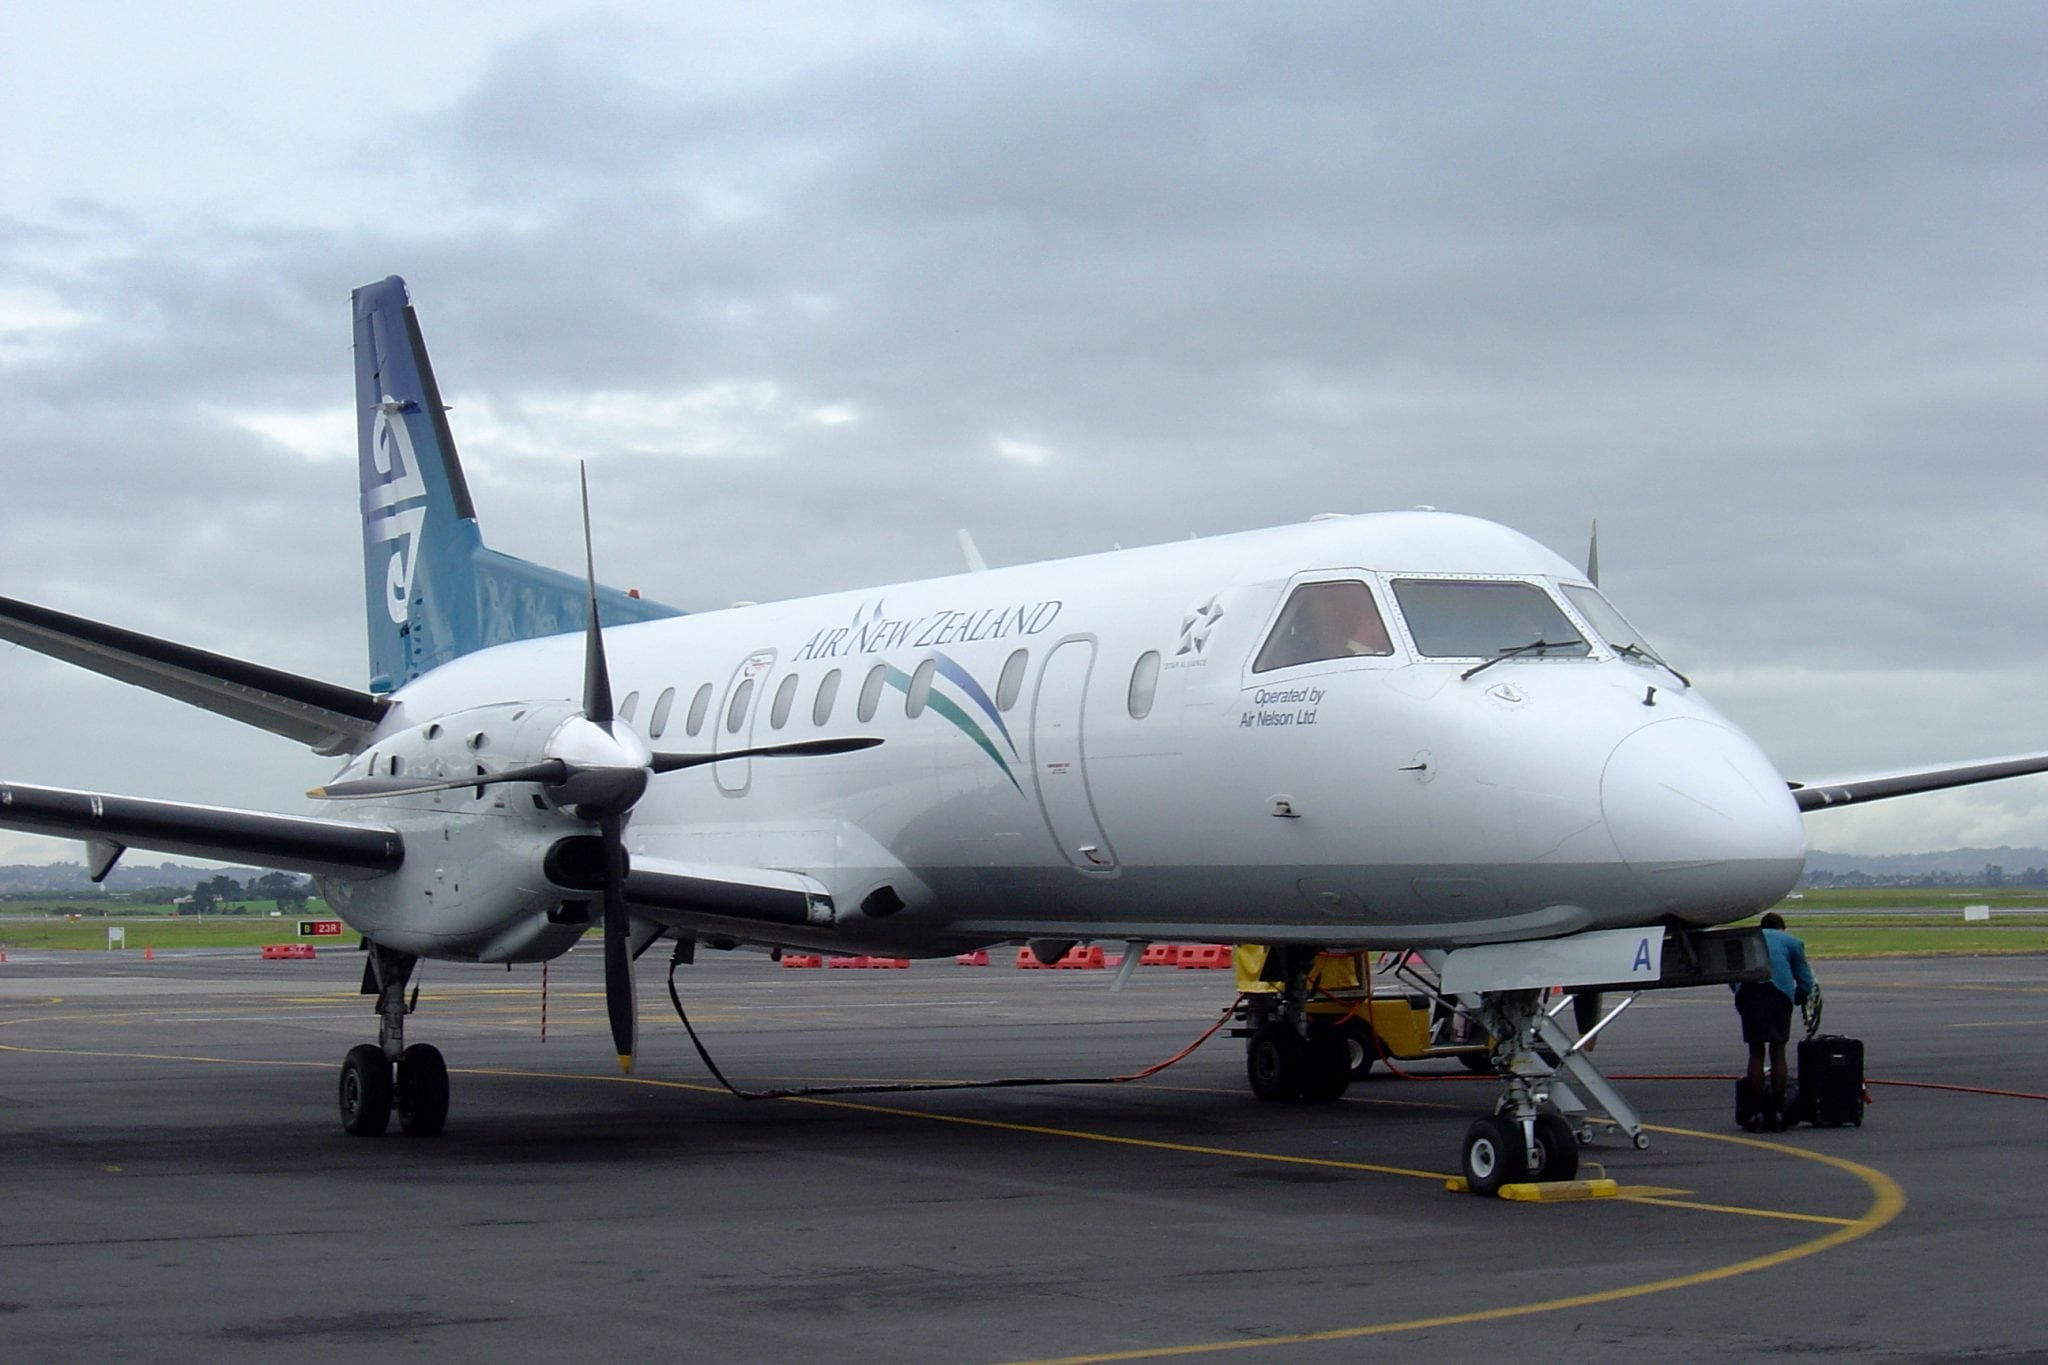 Saab 340 aircraft for which Thomas Global Systems will deliver TFD 8601 cockpit display replacements